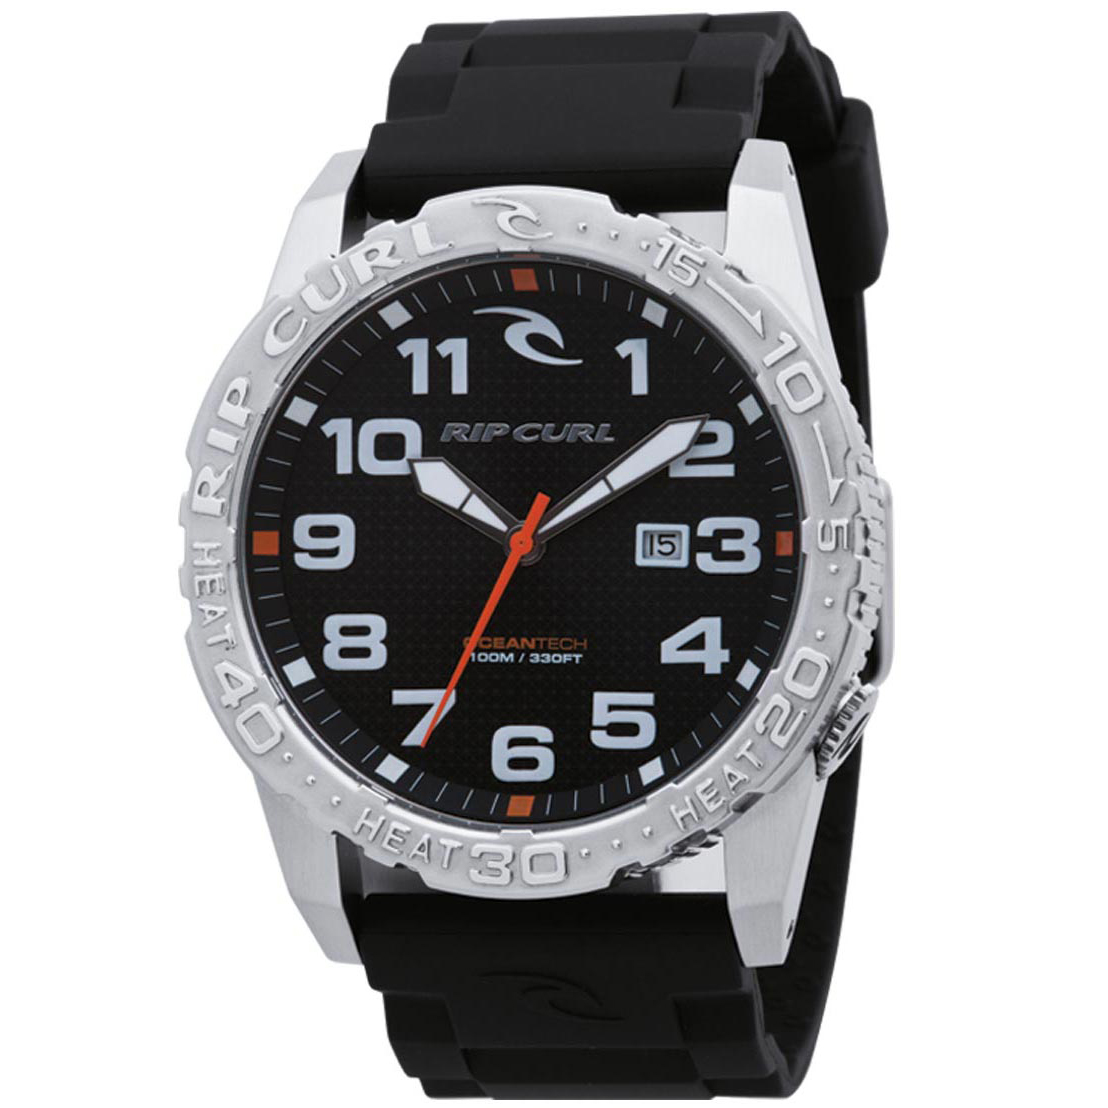 asp diplomat video diplomatss products surf the beach ss watches watch wrightsville nixon city